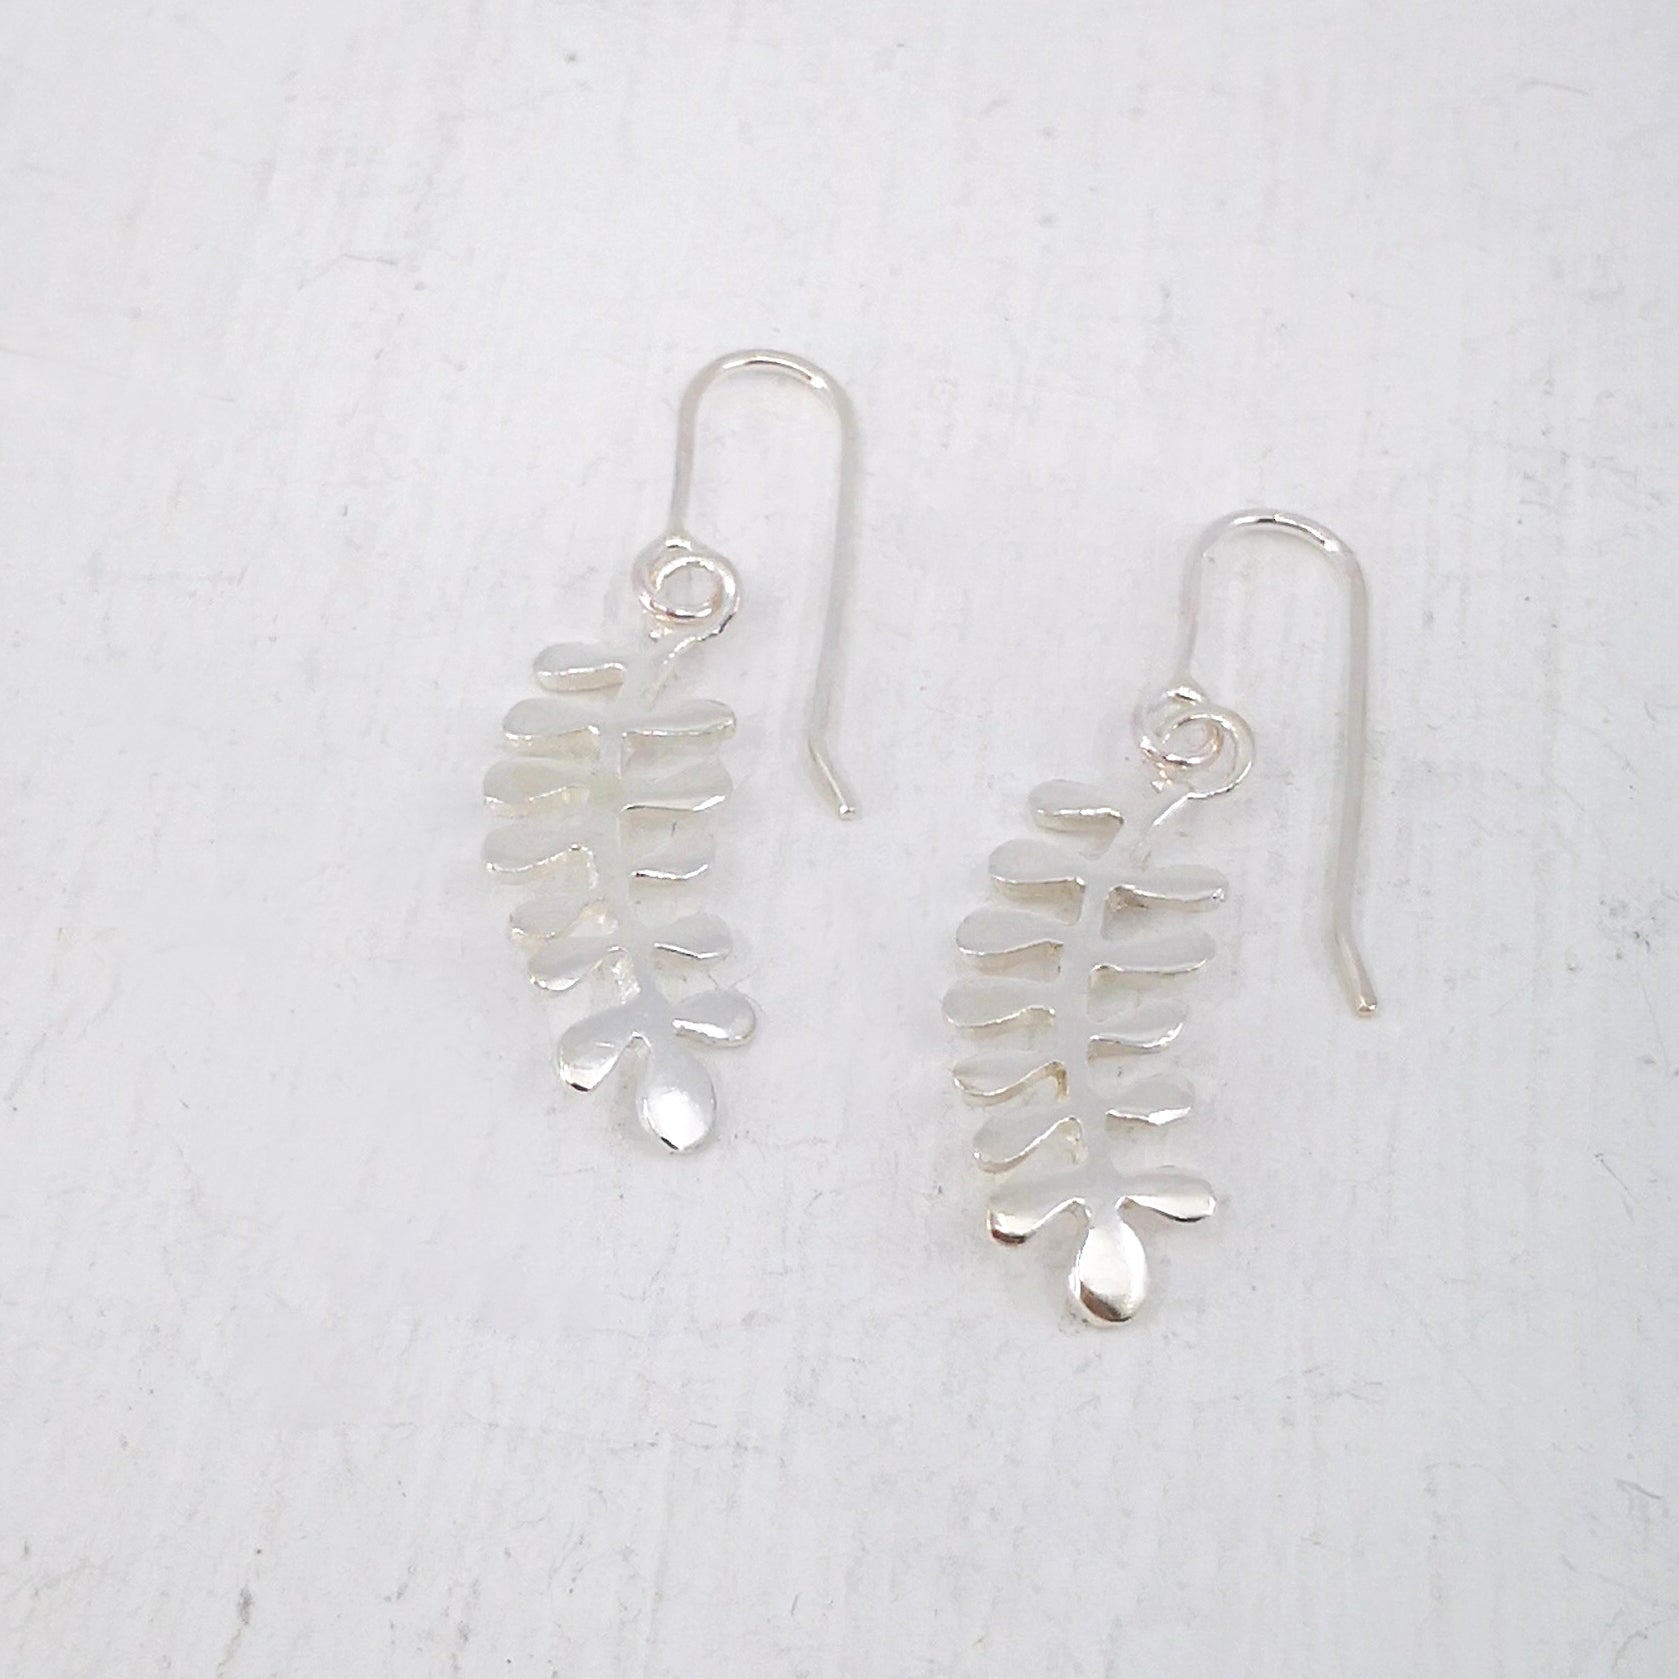 The Kowhai Leaf Earrings in sterling silver, hand crafted in NZ by Ruru Jewellery.